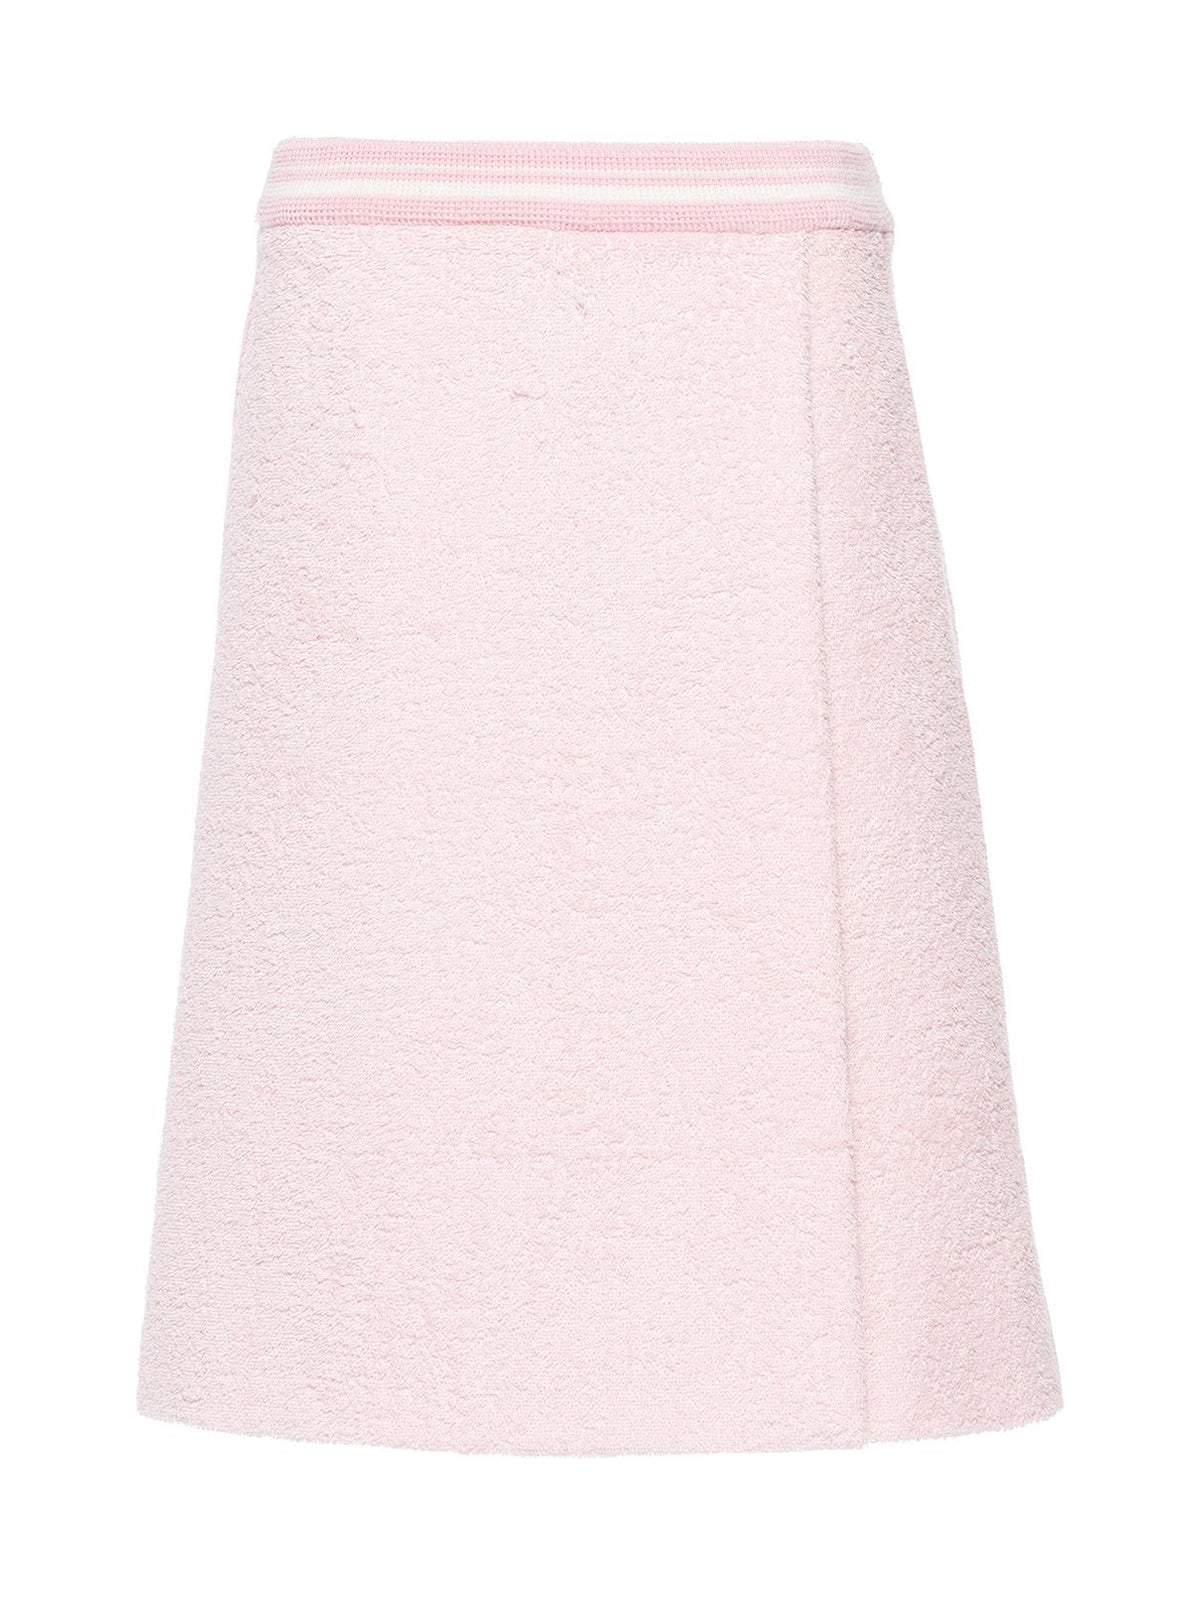 terry stripe trim skirt